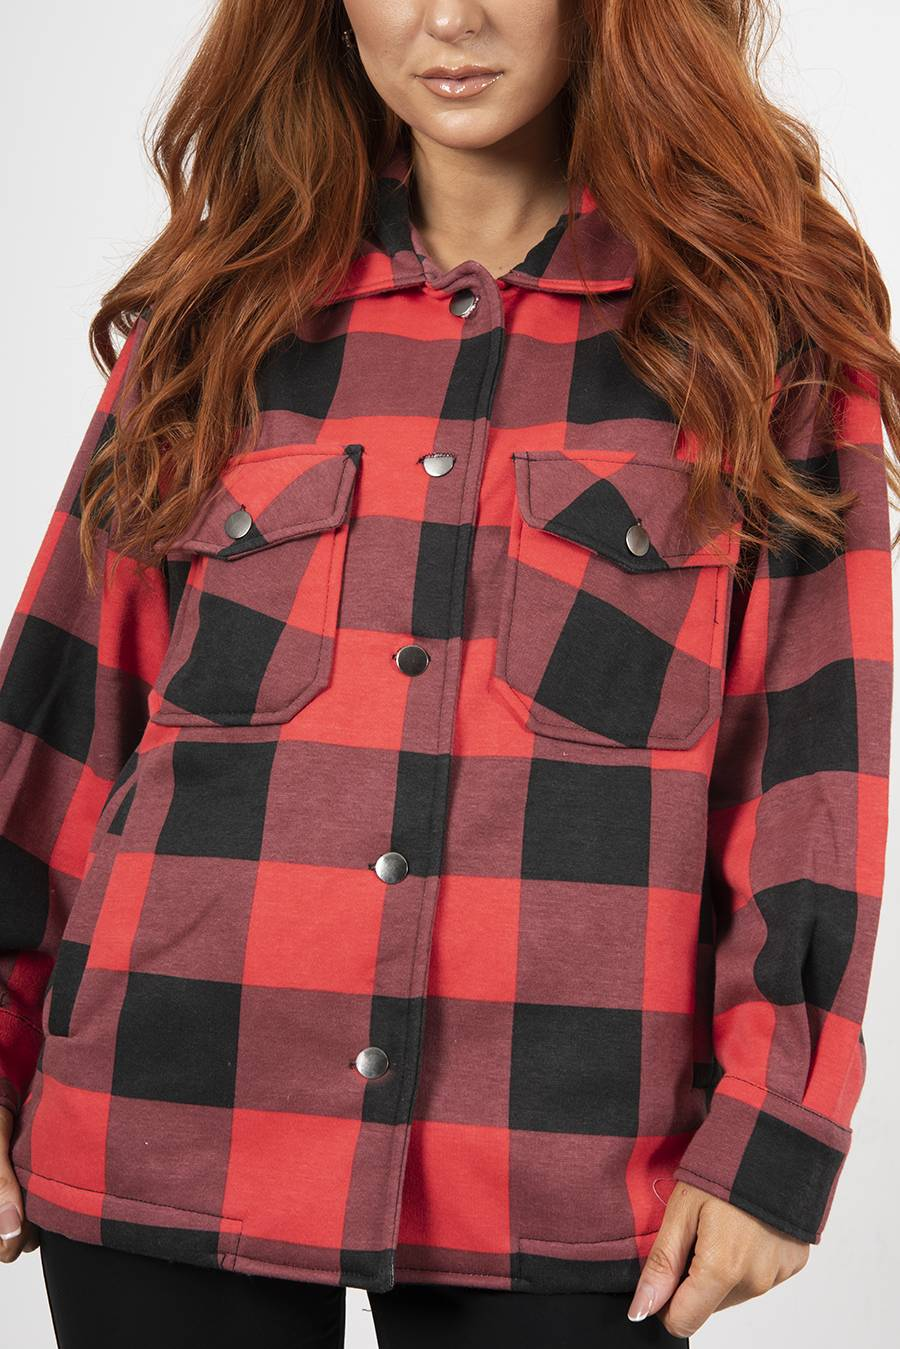 Red And Black Checked Jacket J5 Fashion